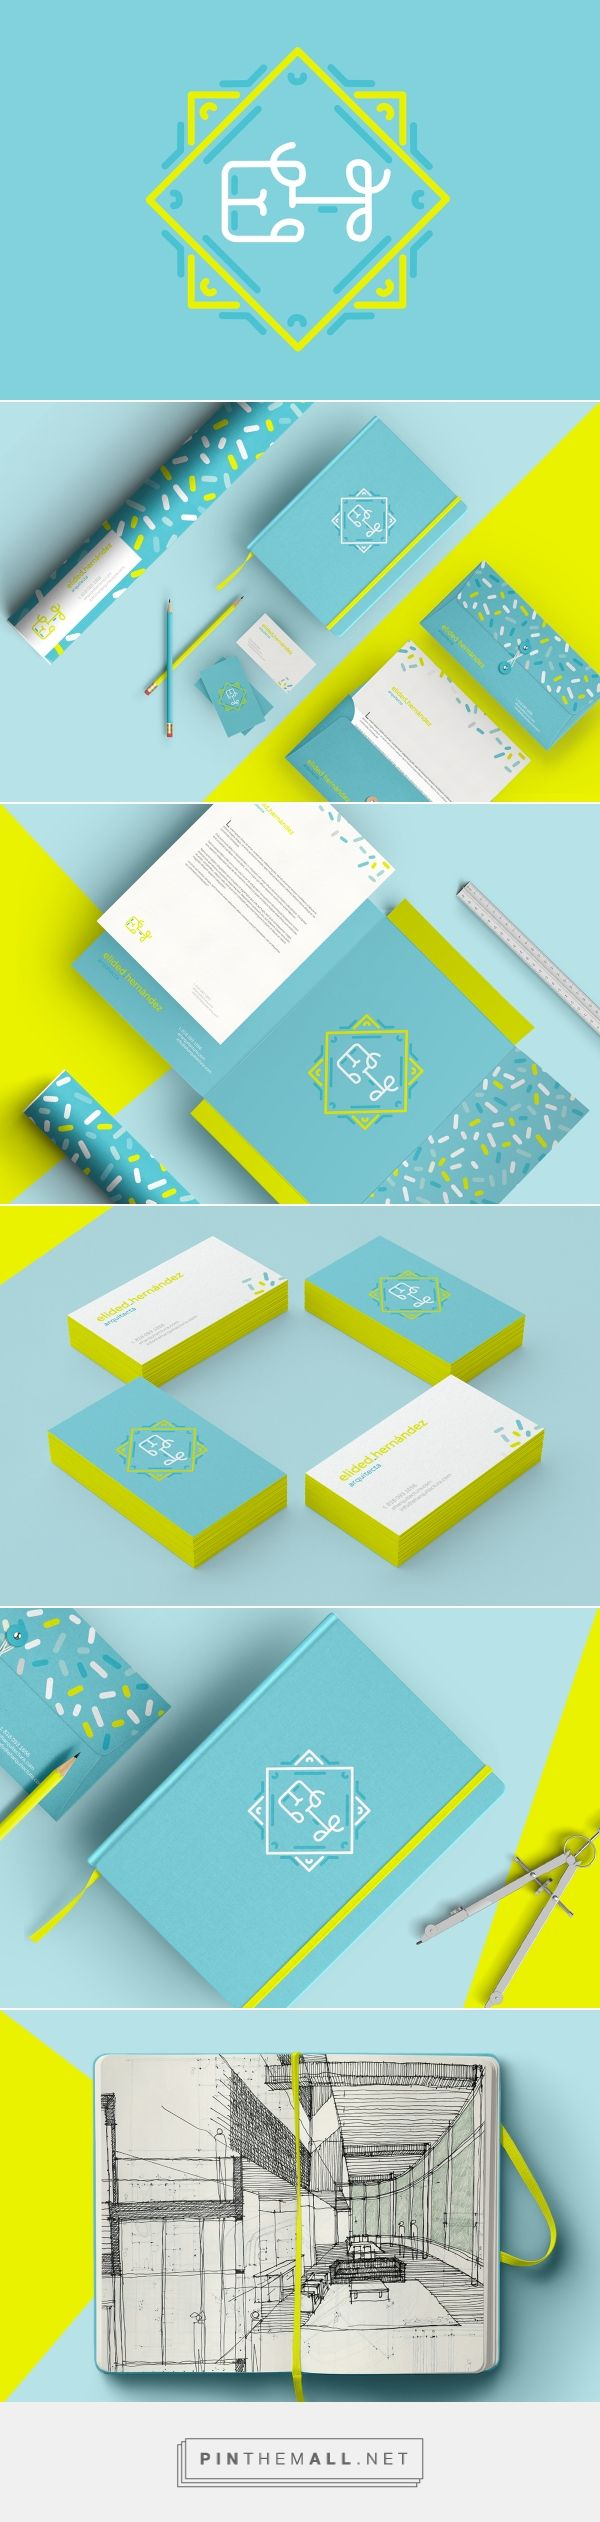 EH Arquitectura Lizzy Cantu on Behance | Fivestar Branding – Design and Branding Agency & Inspiration Gallery